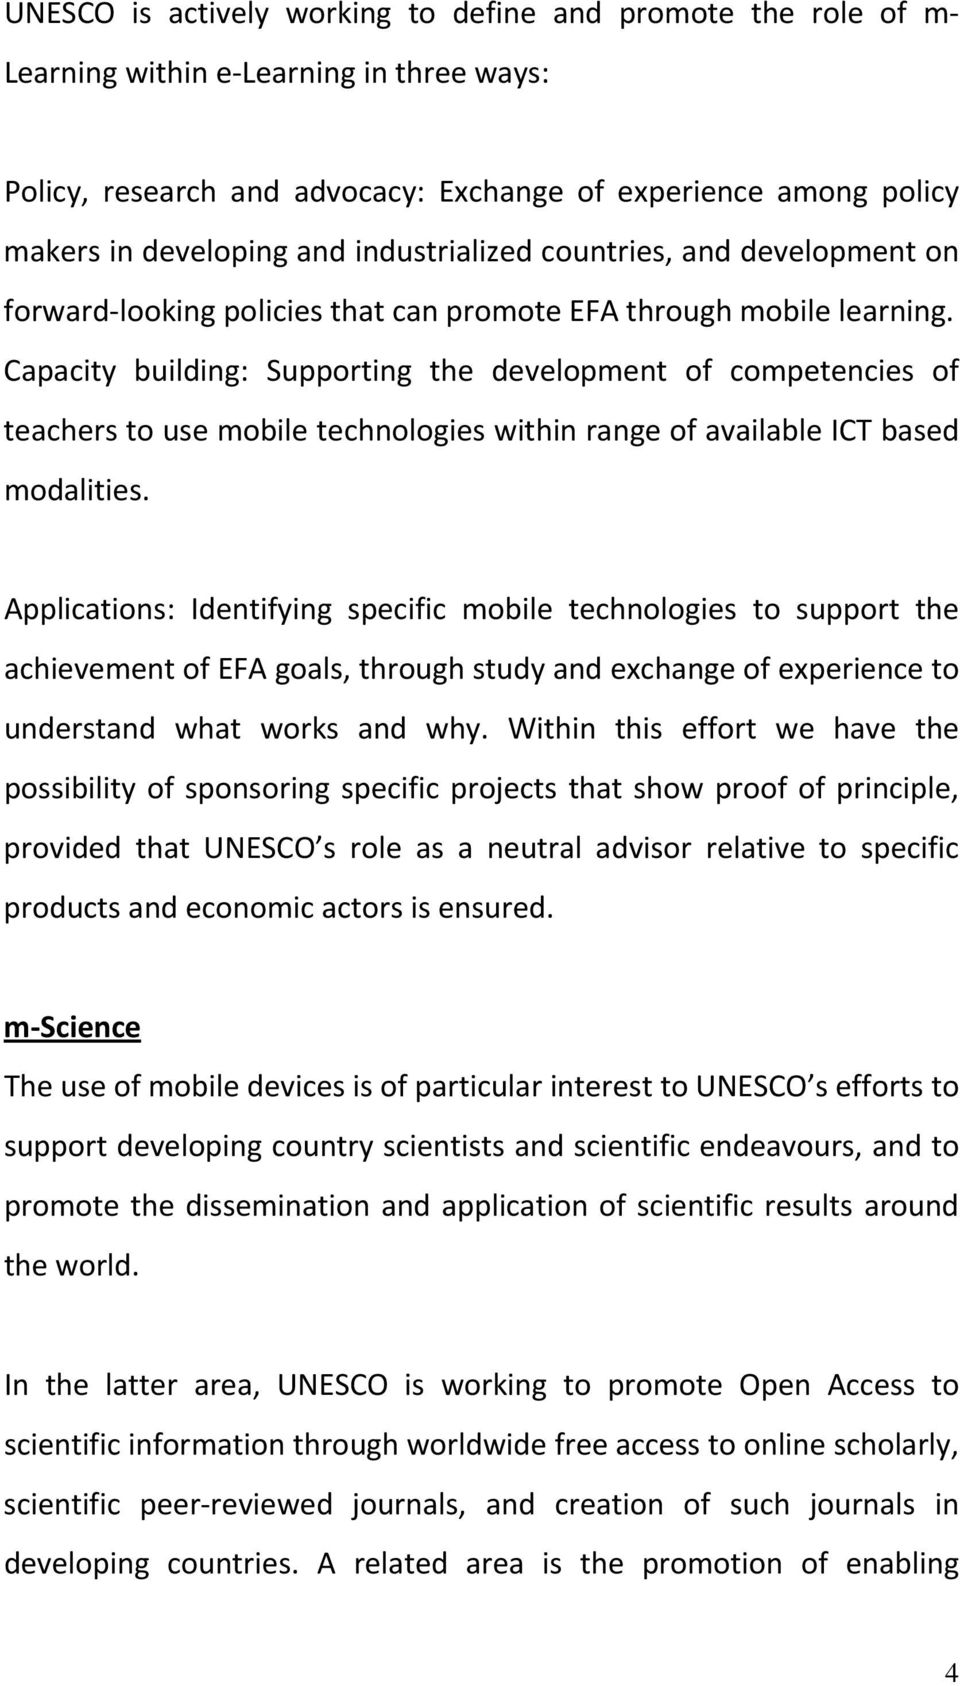 Capacity building: Supporting the development of competencies of teachers to use mobile technologies within range of available ICT based modalities.